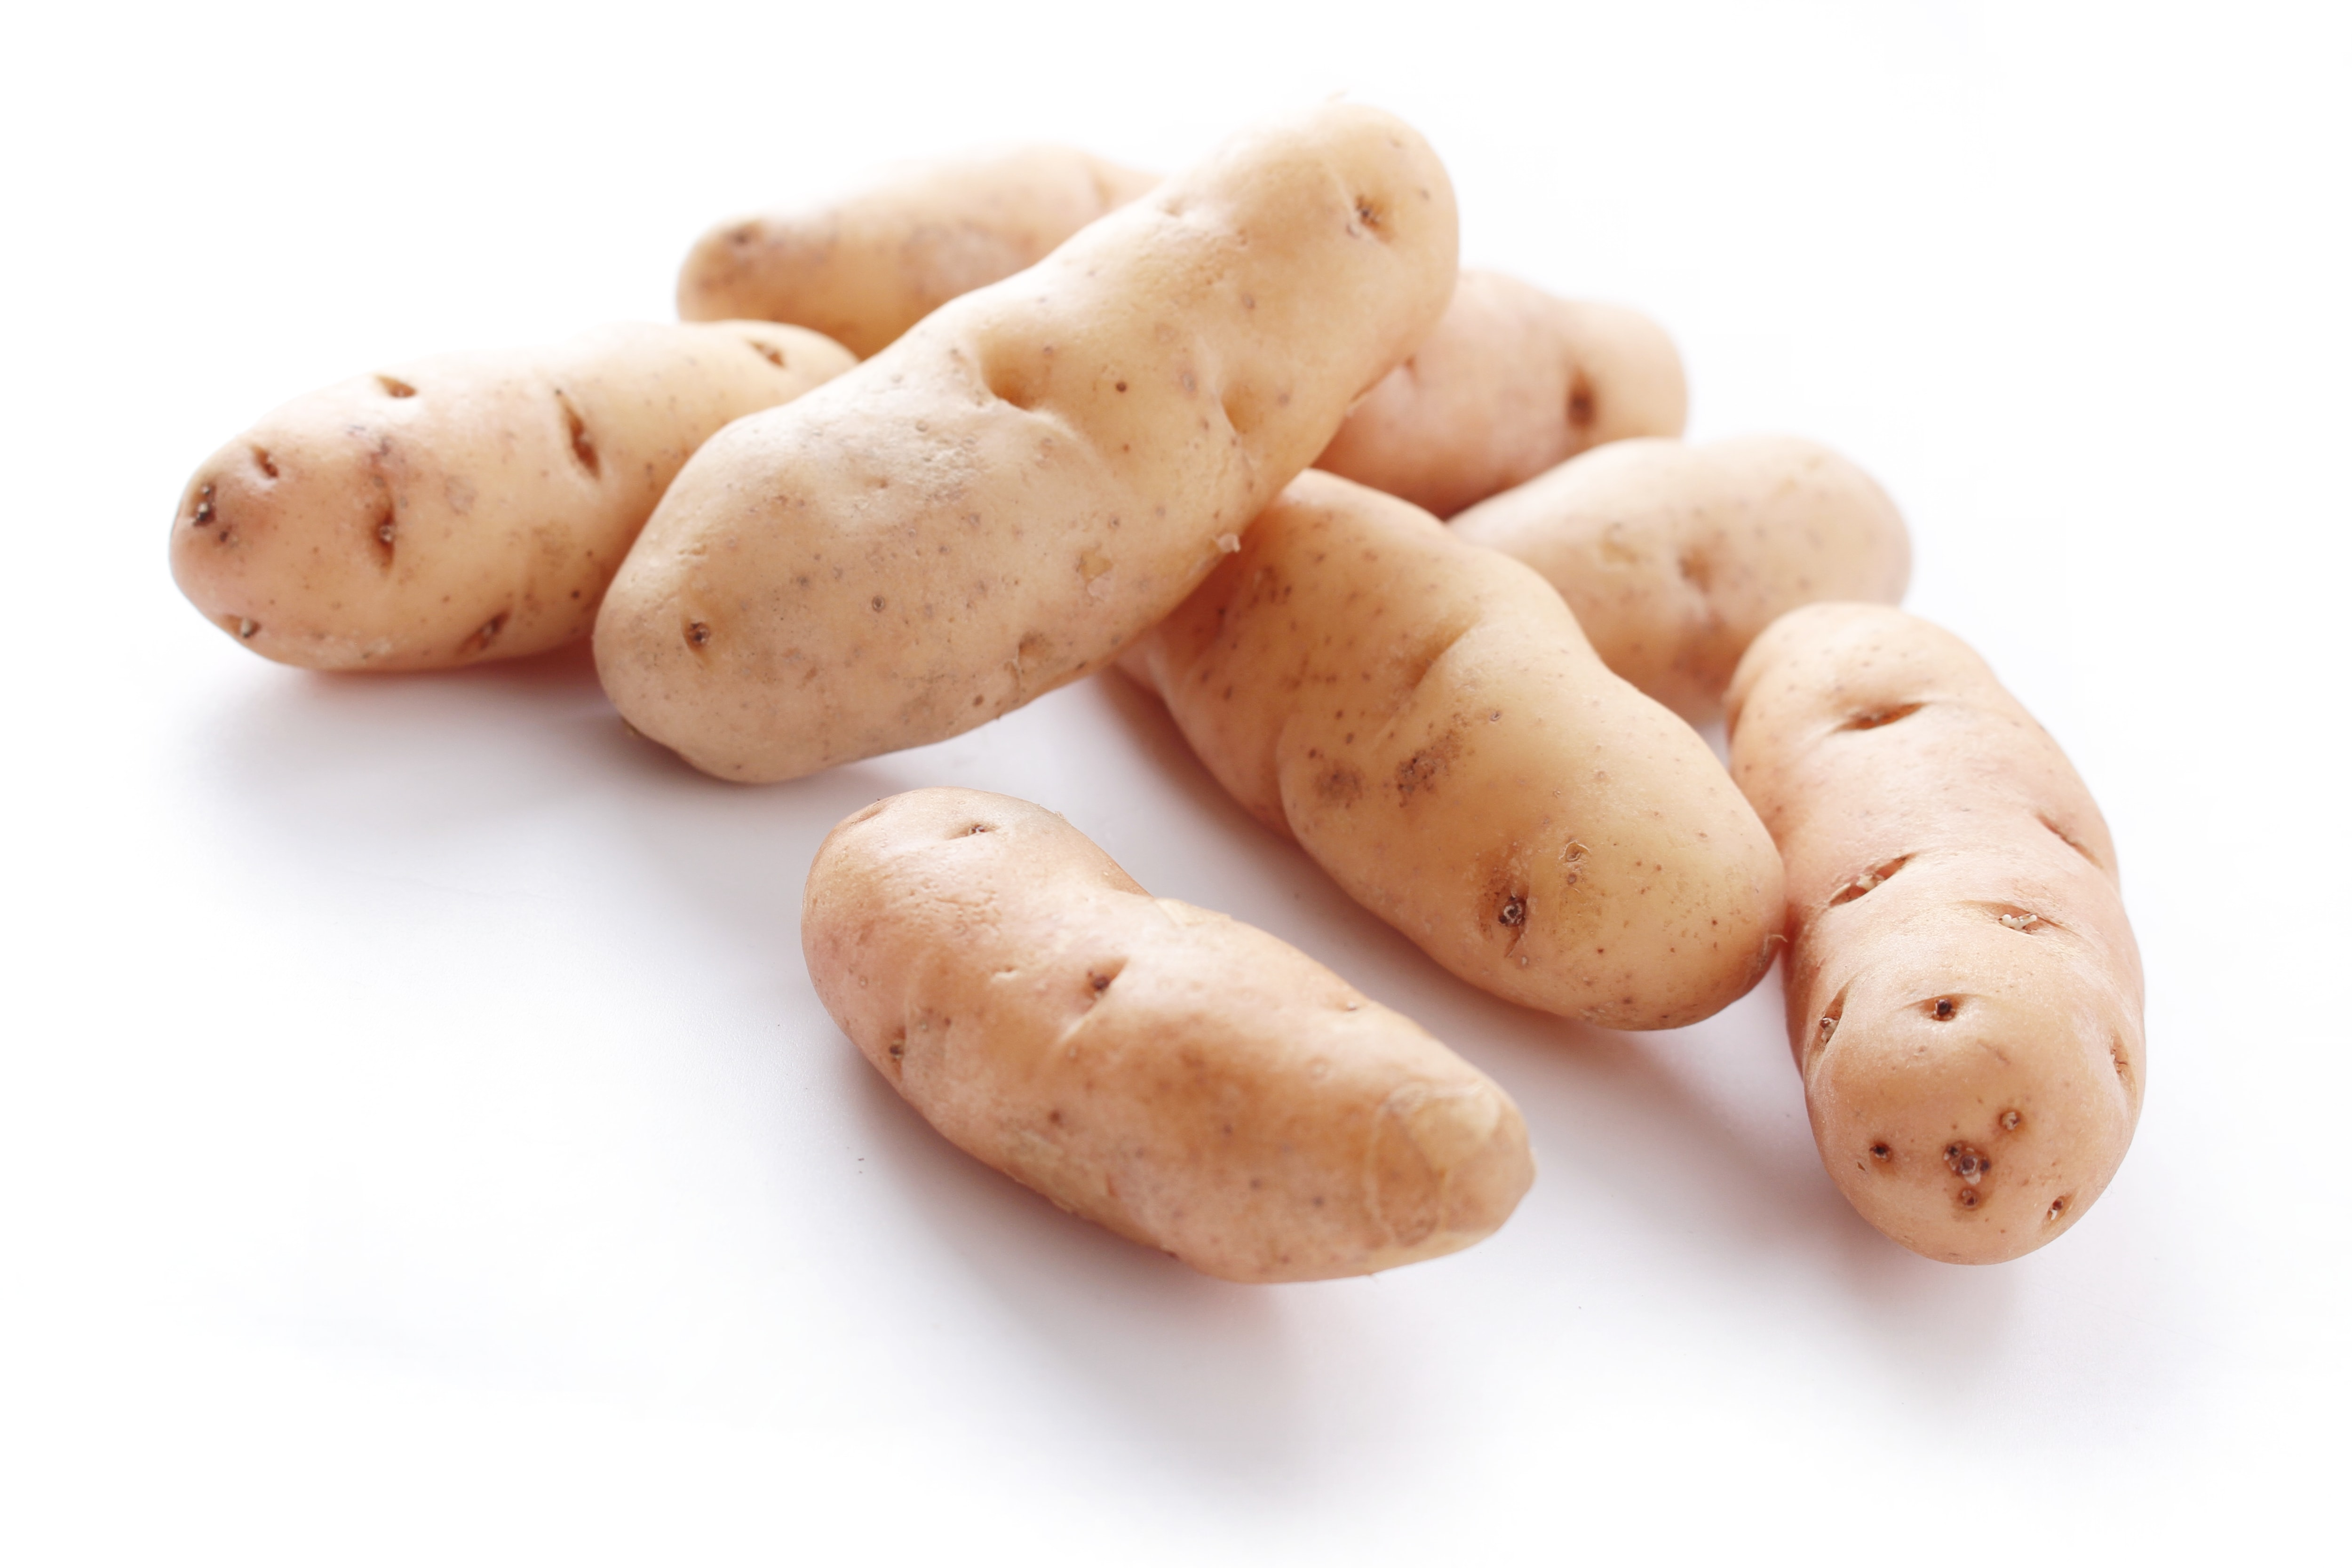 potatoes can be used to detect fungus gnat larvae